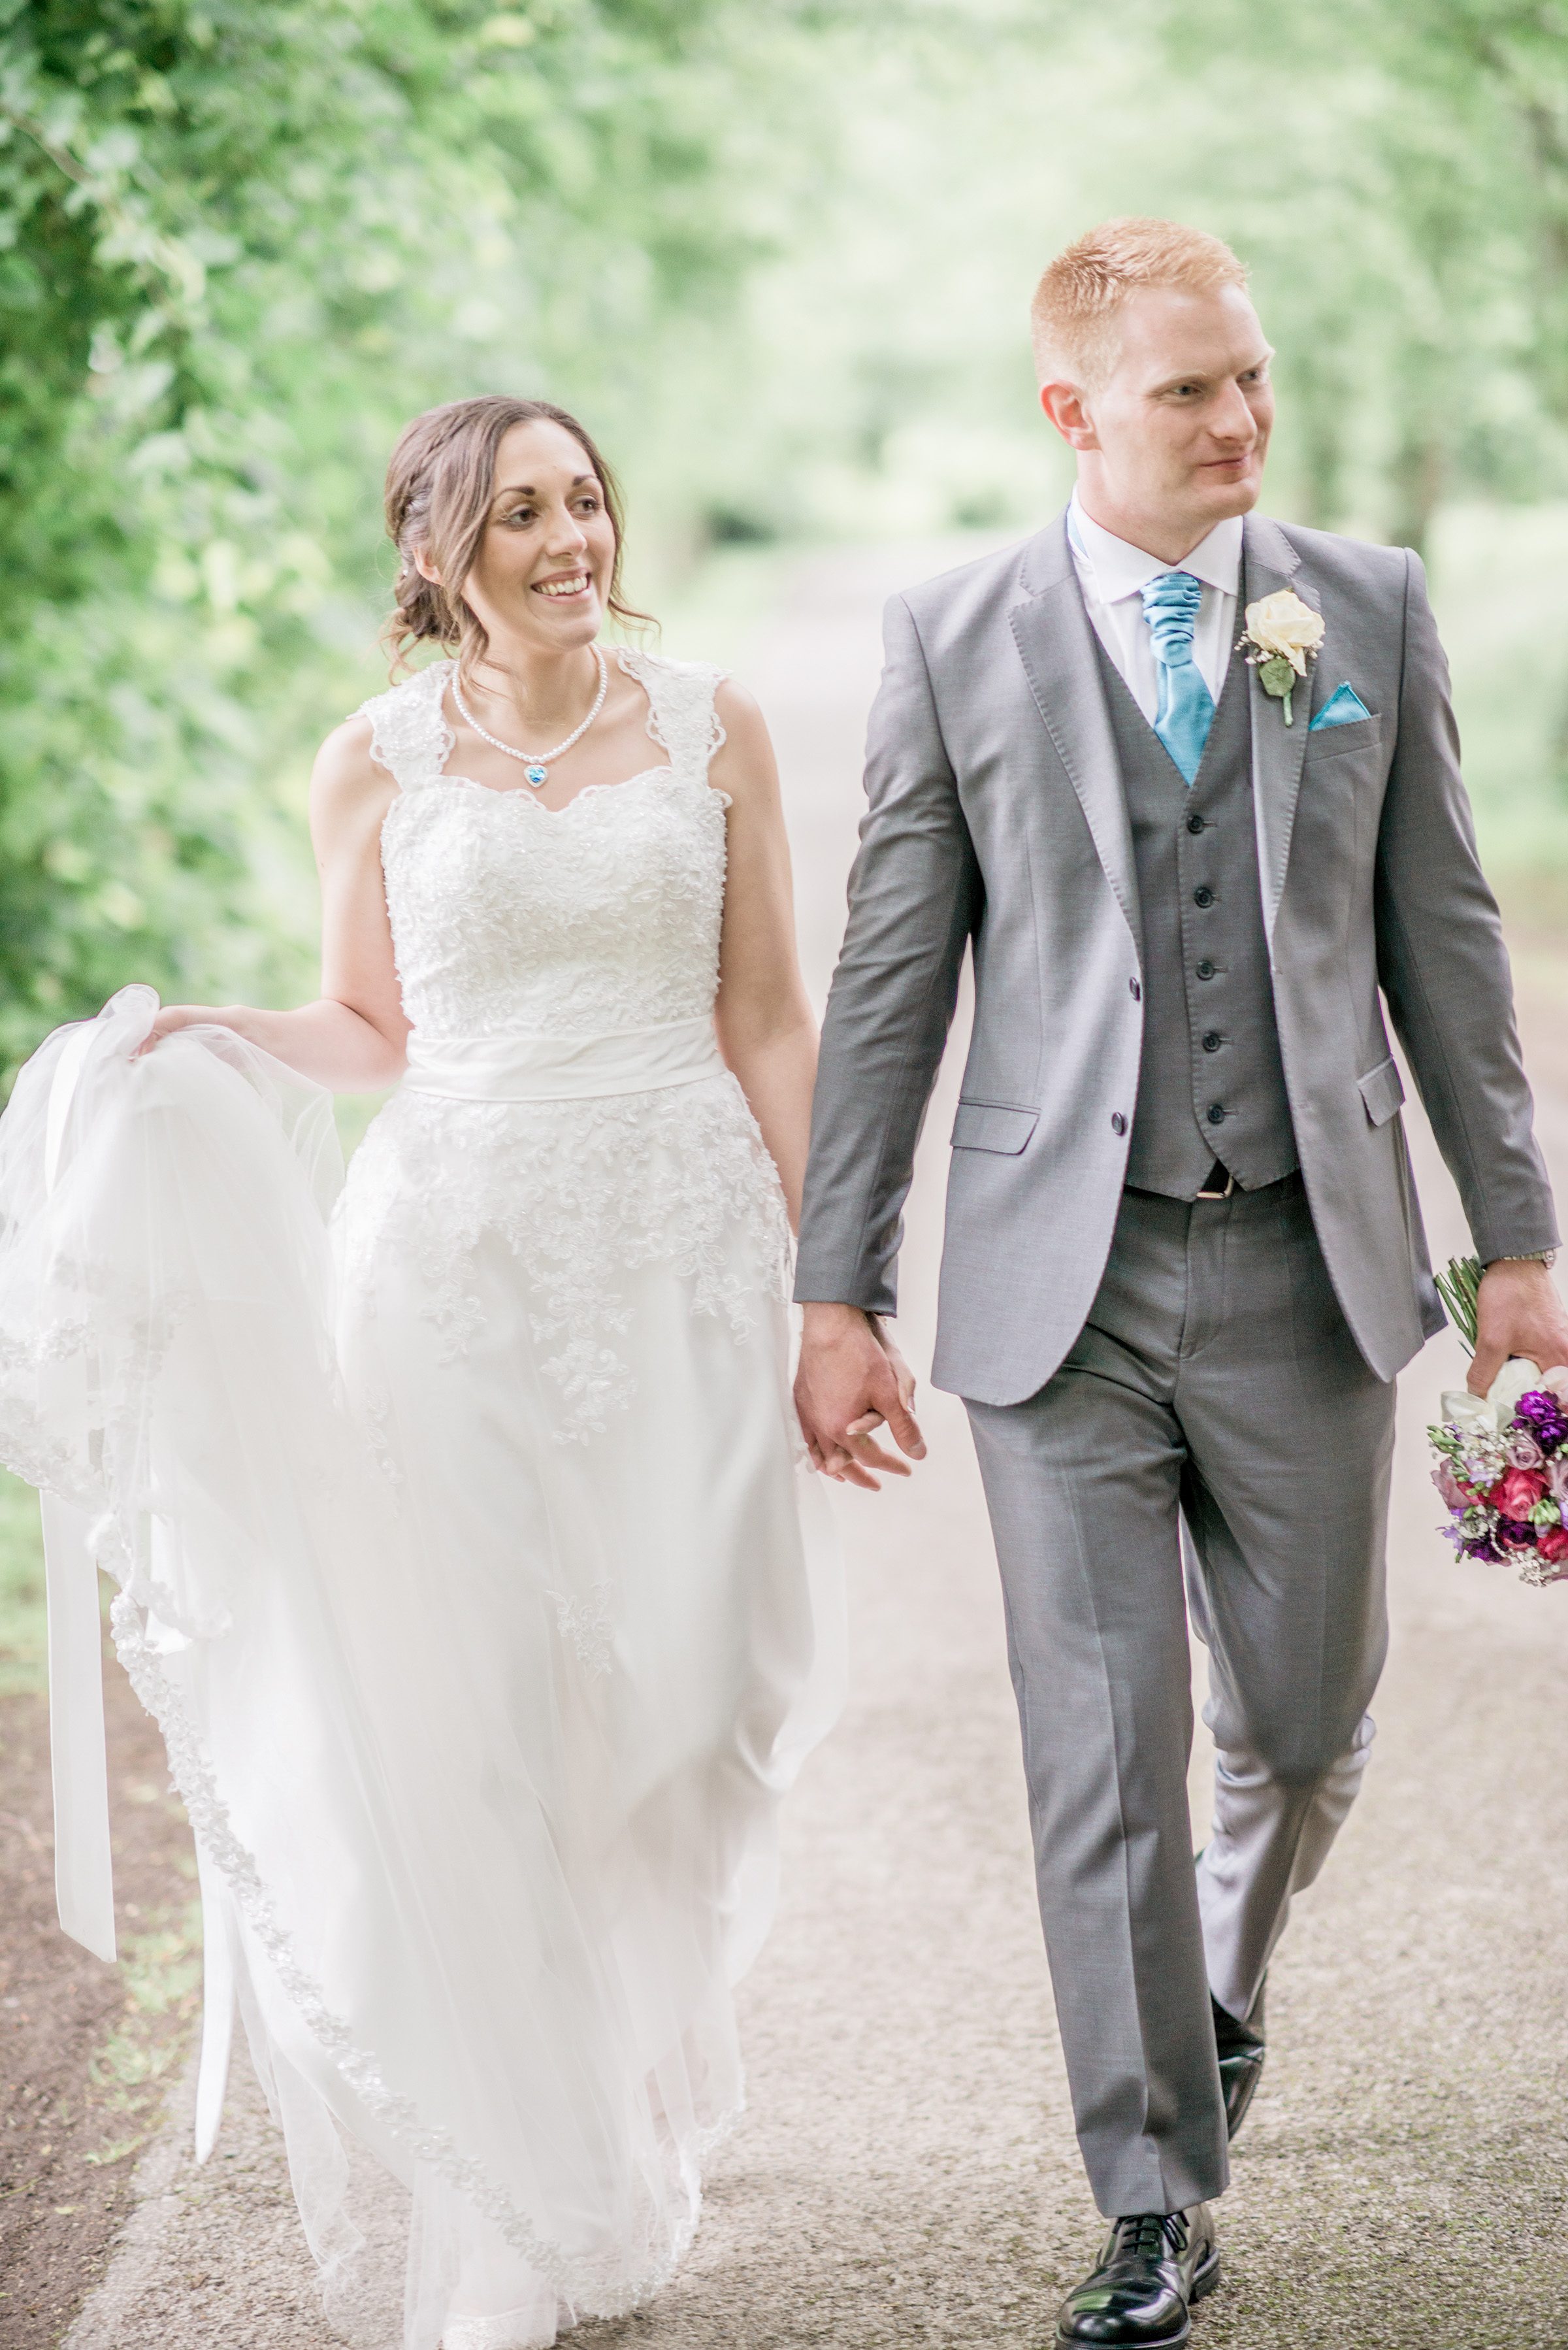 Hanna & Damian married at Dower House Woodall Spa